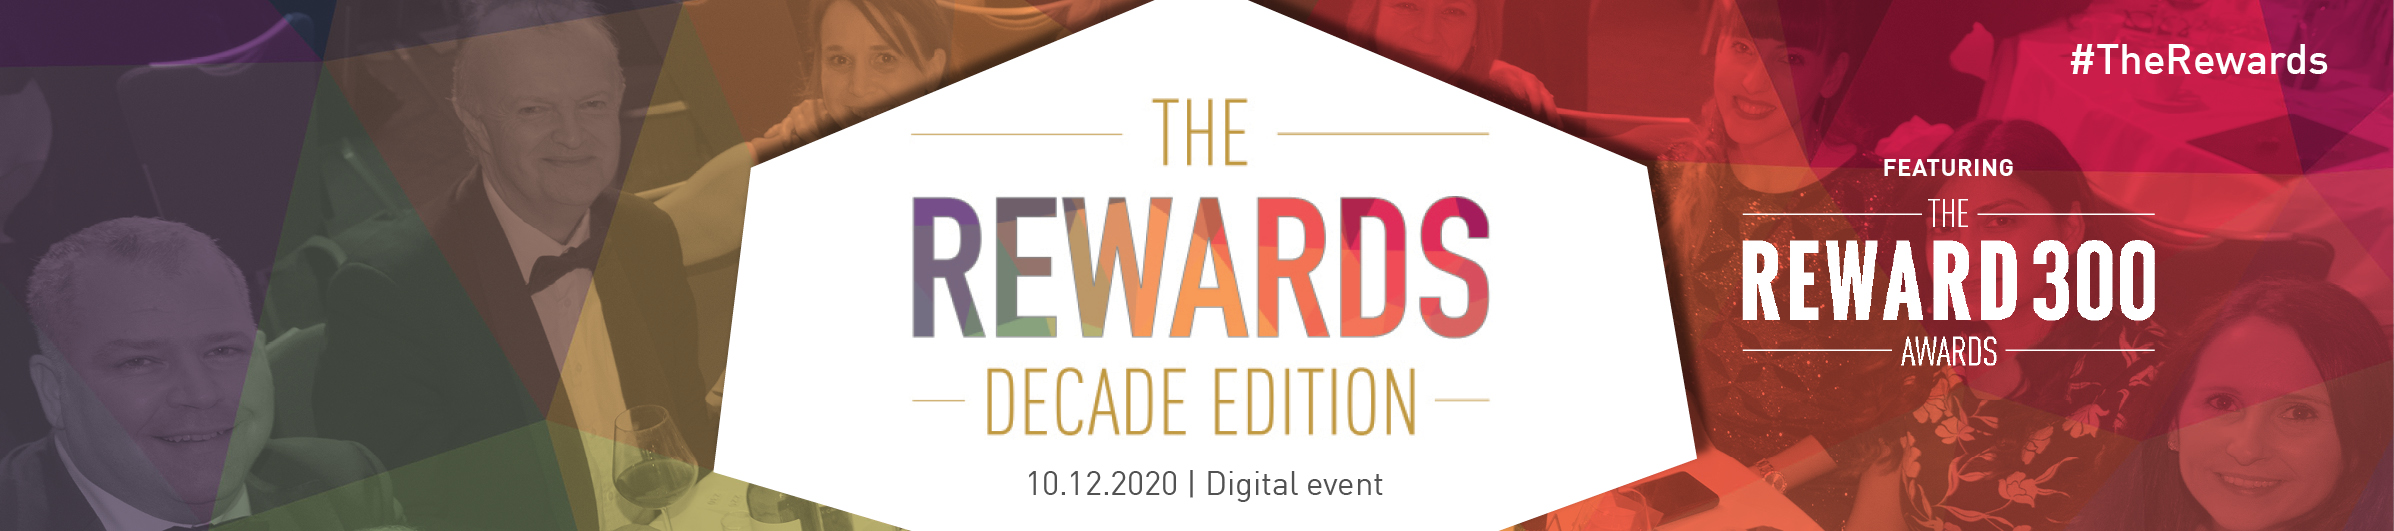 The Rewards_DE_ website banner.jpg